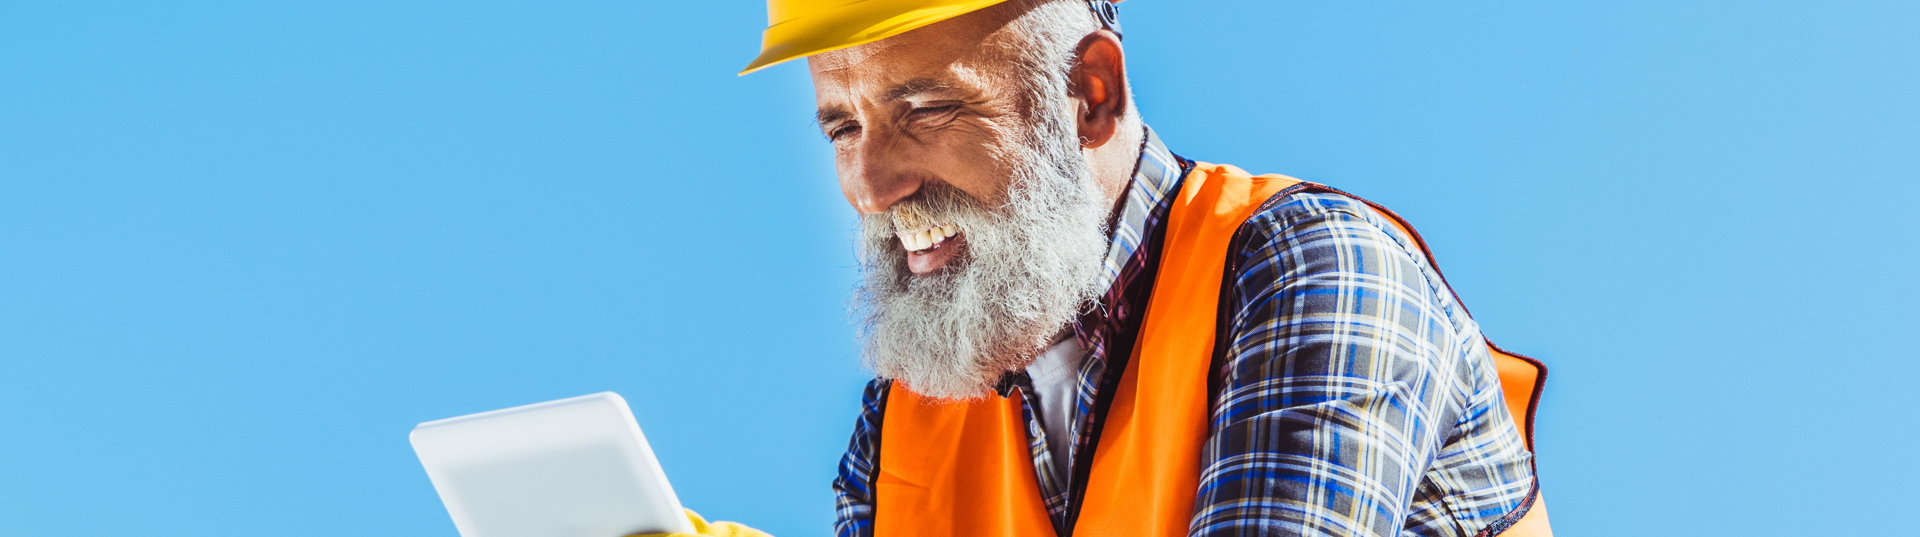 Construction worker smiling with tablet